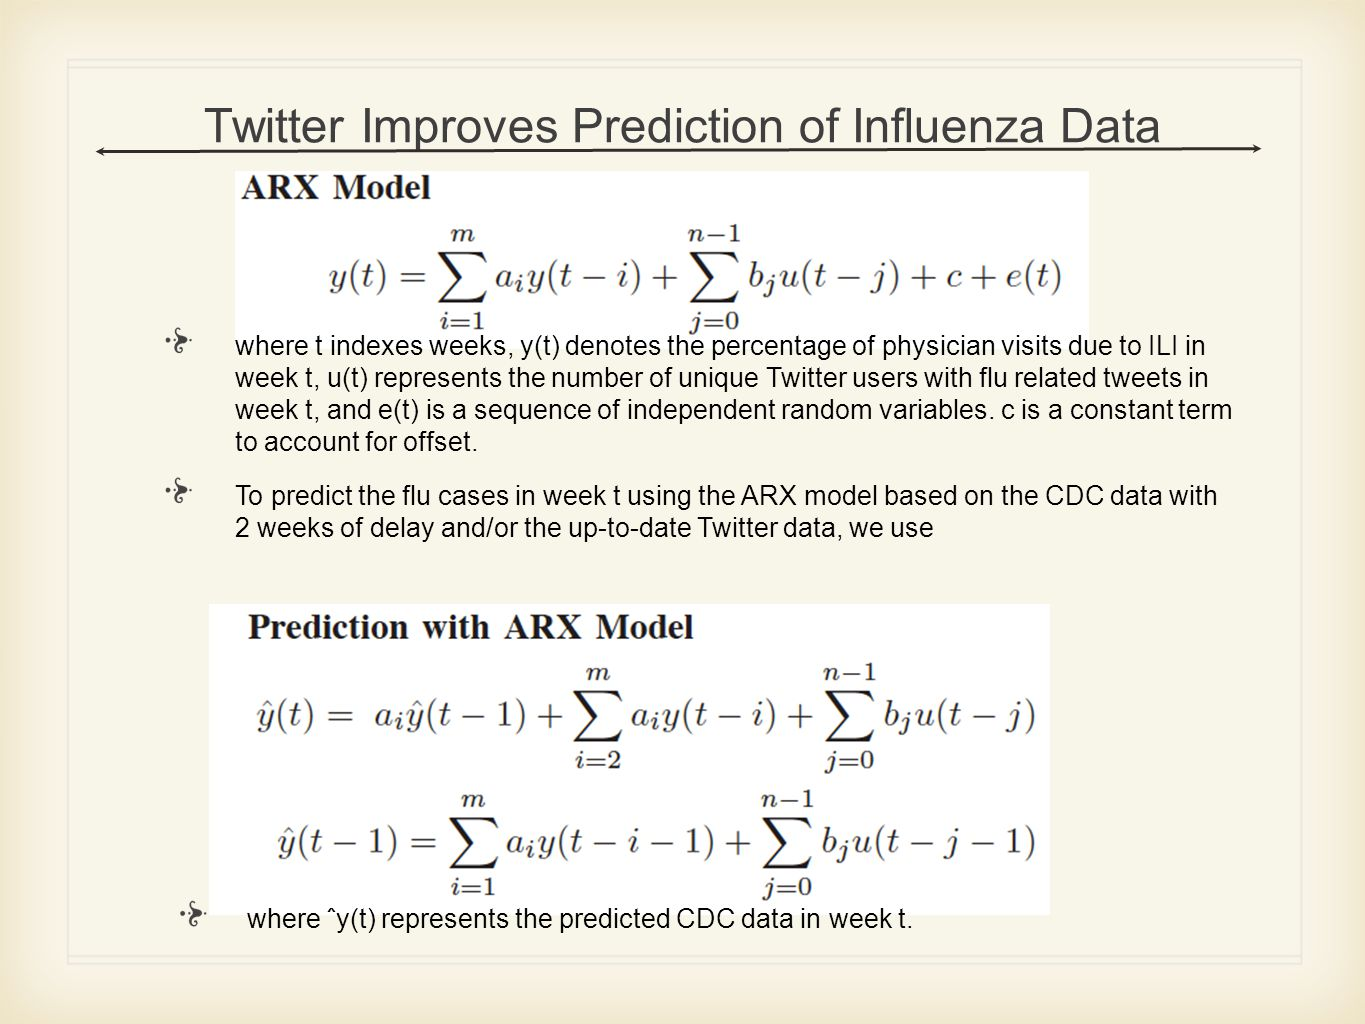 Twitter Improves Prediction of Influenza Data where t indexes weeks, y(t) denotes the percentage of physician visits due to ILI in week t, u(t) represents the number of unique Twitter users with flu related tweets in week t, and e(t) is a sequence of independent random variables.